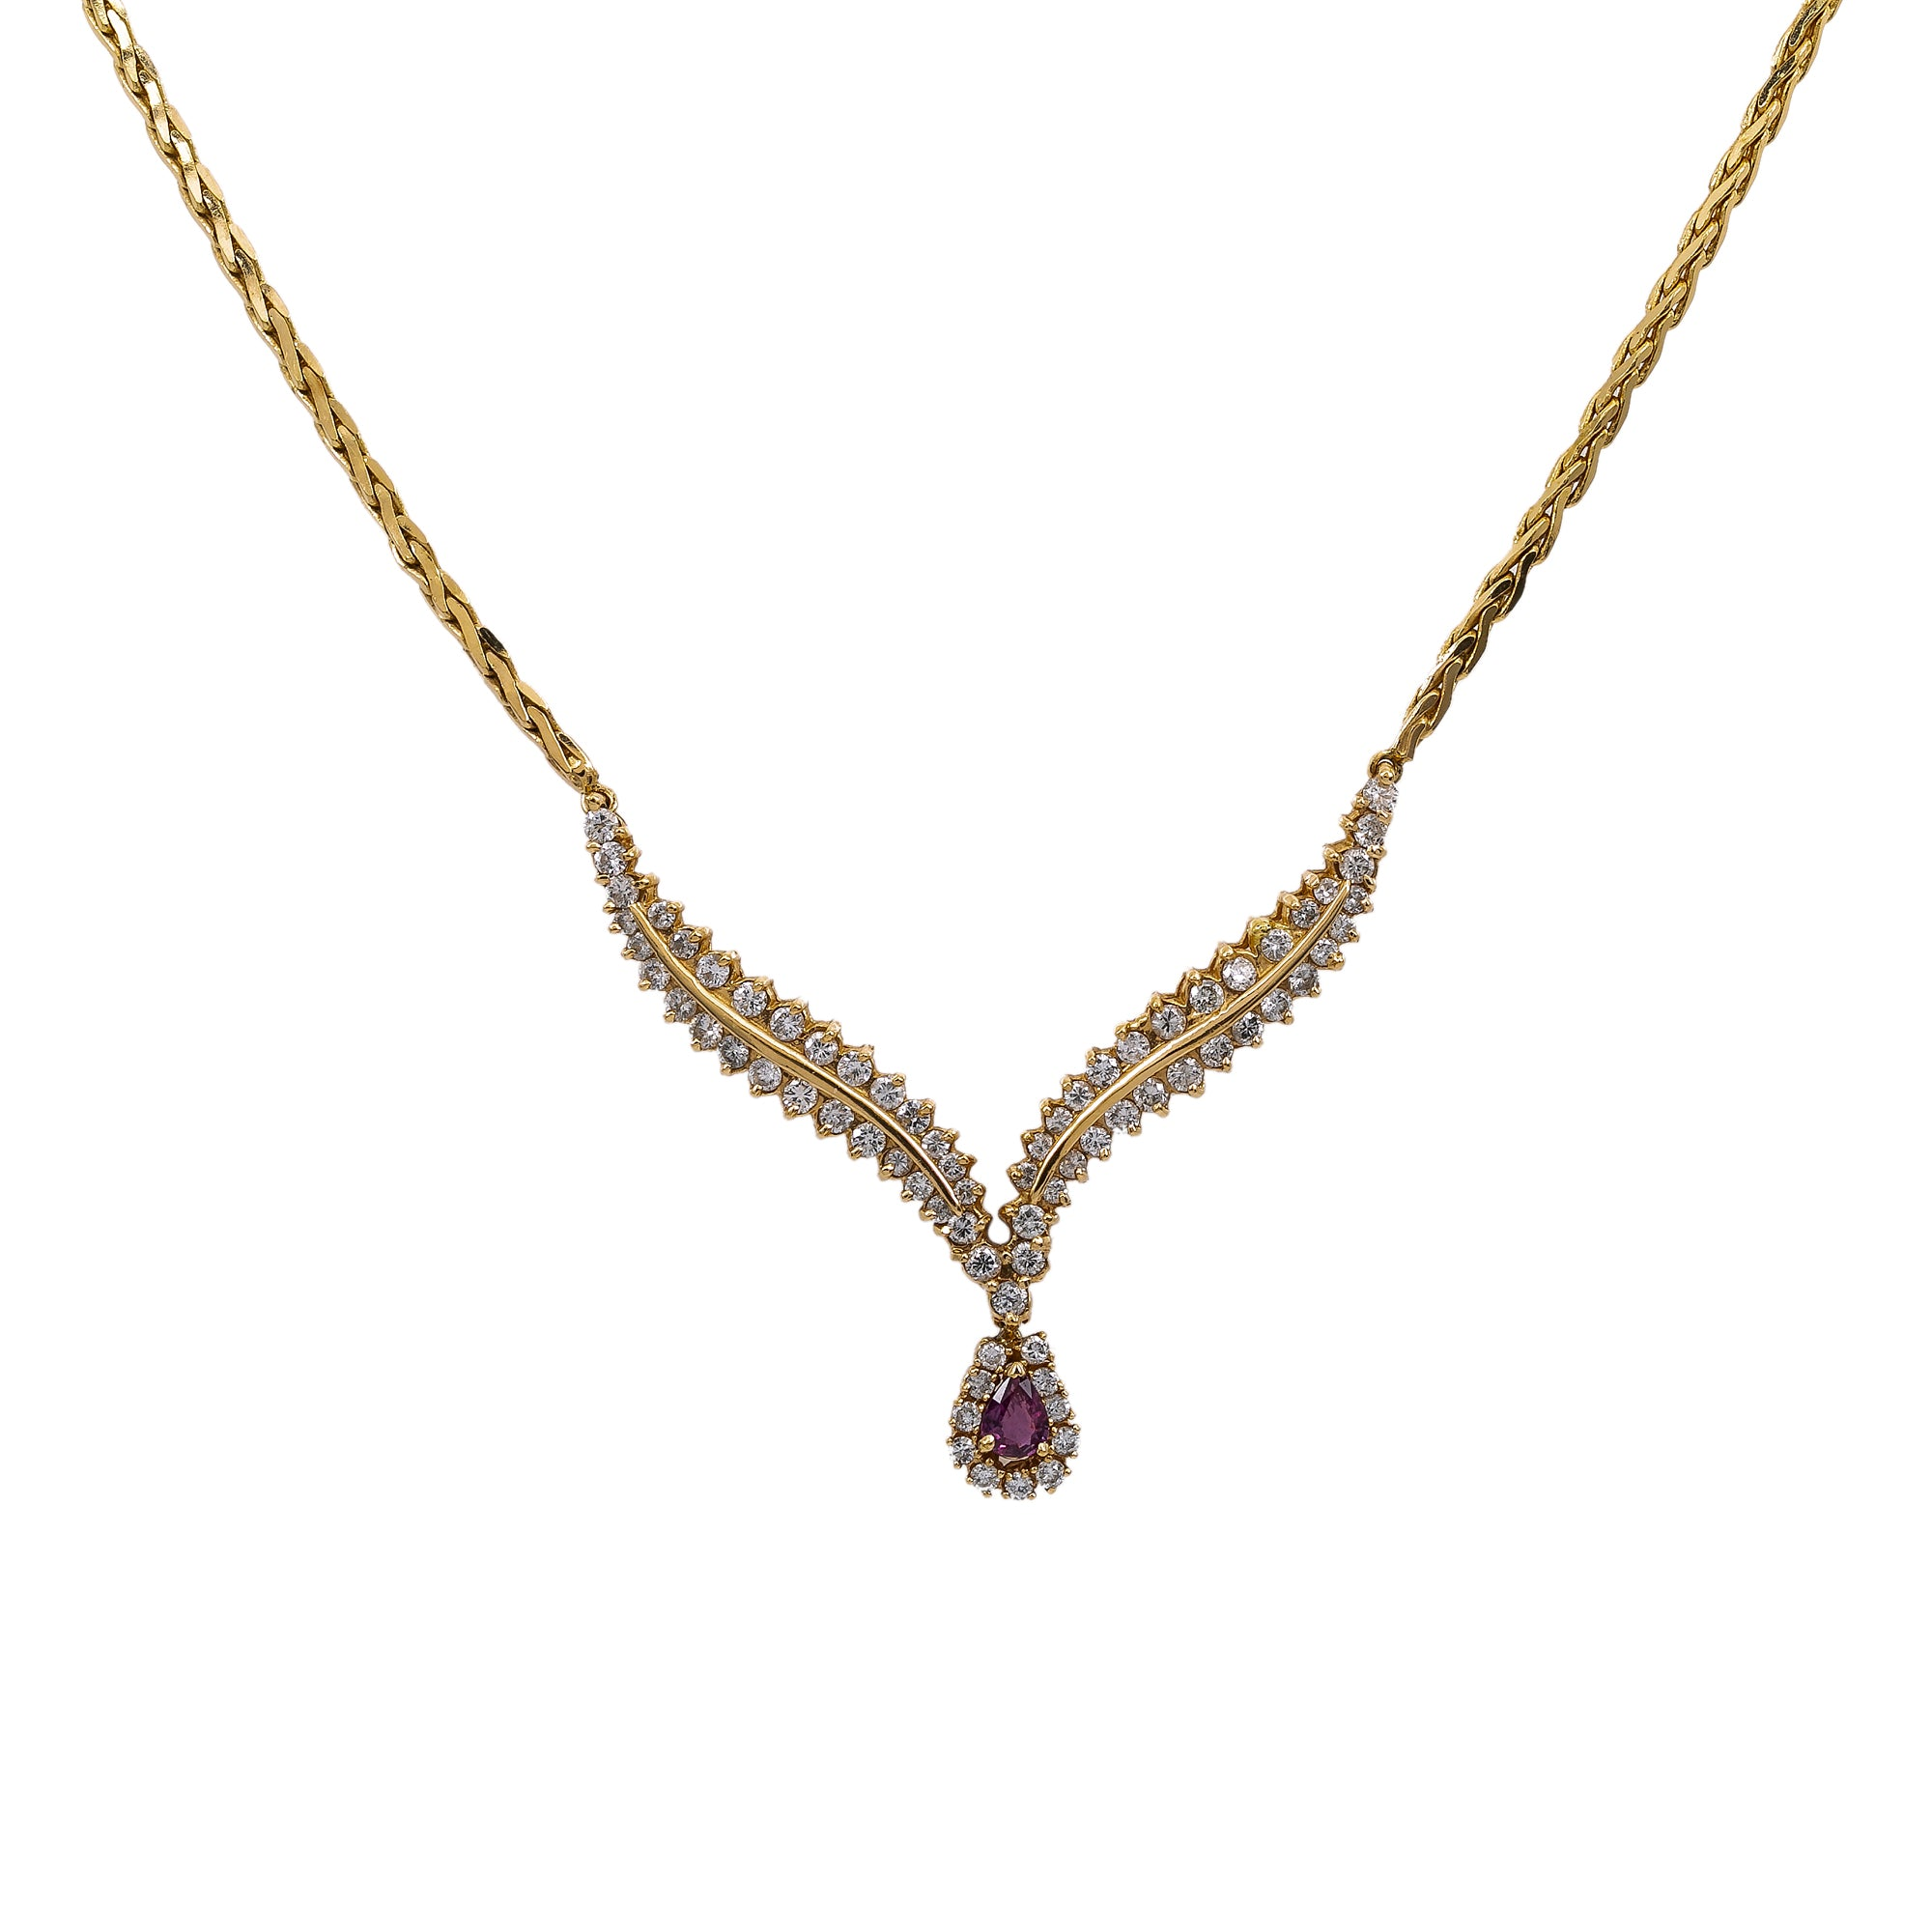 14K Yellow Gold Women's Necklace, 18